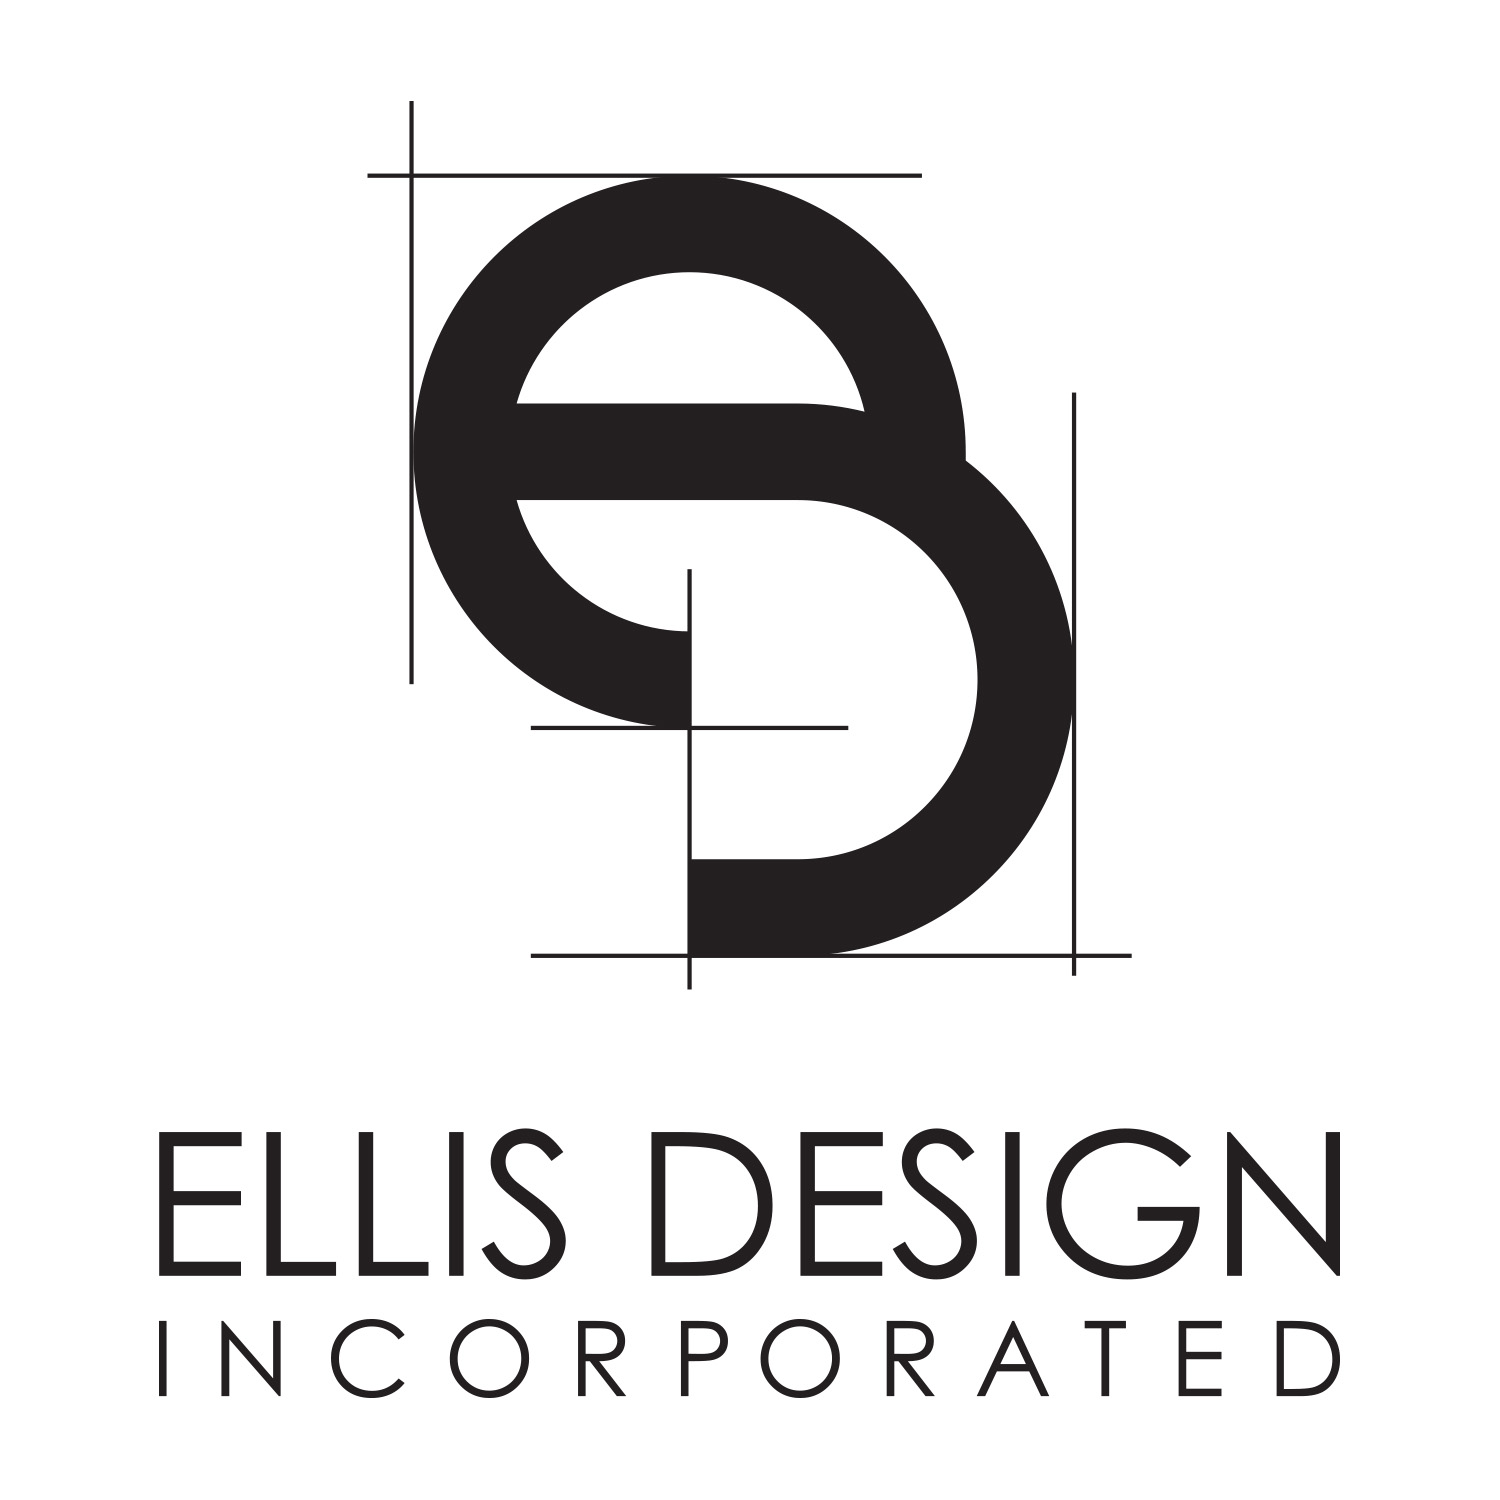 Ellis Design Incoporated